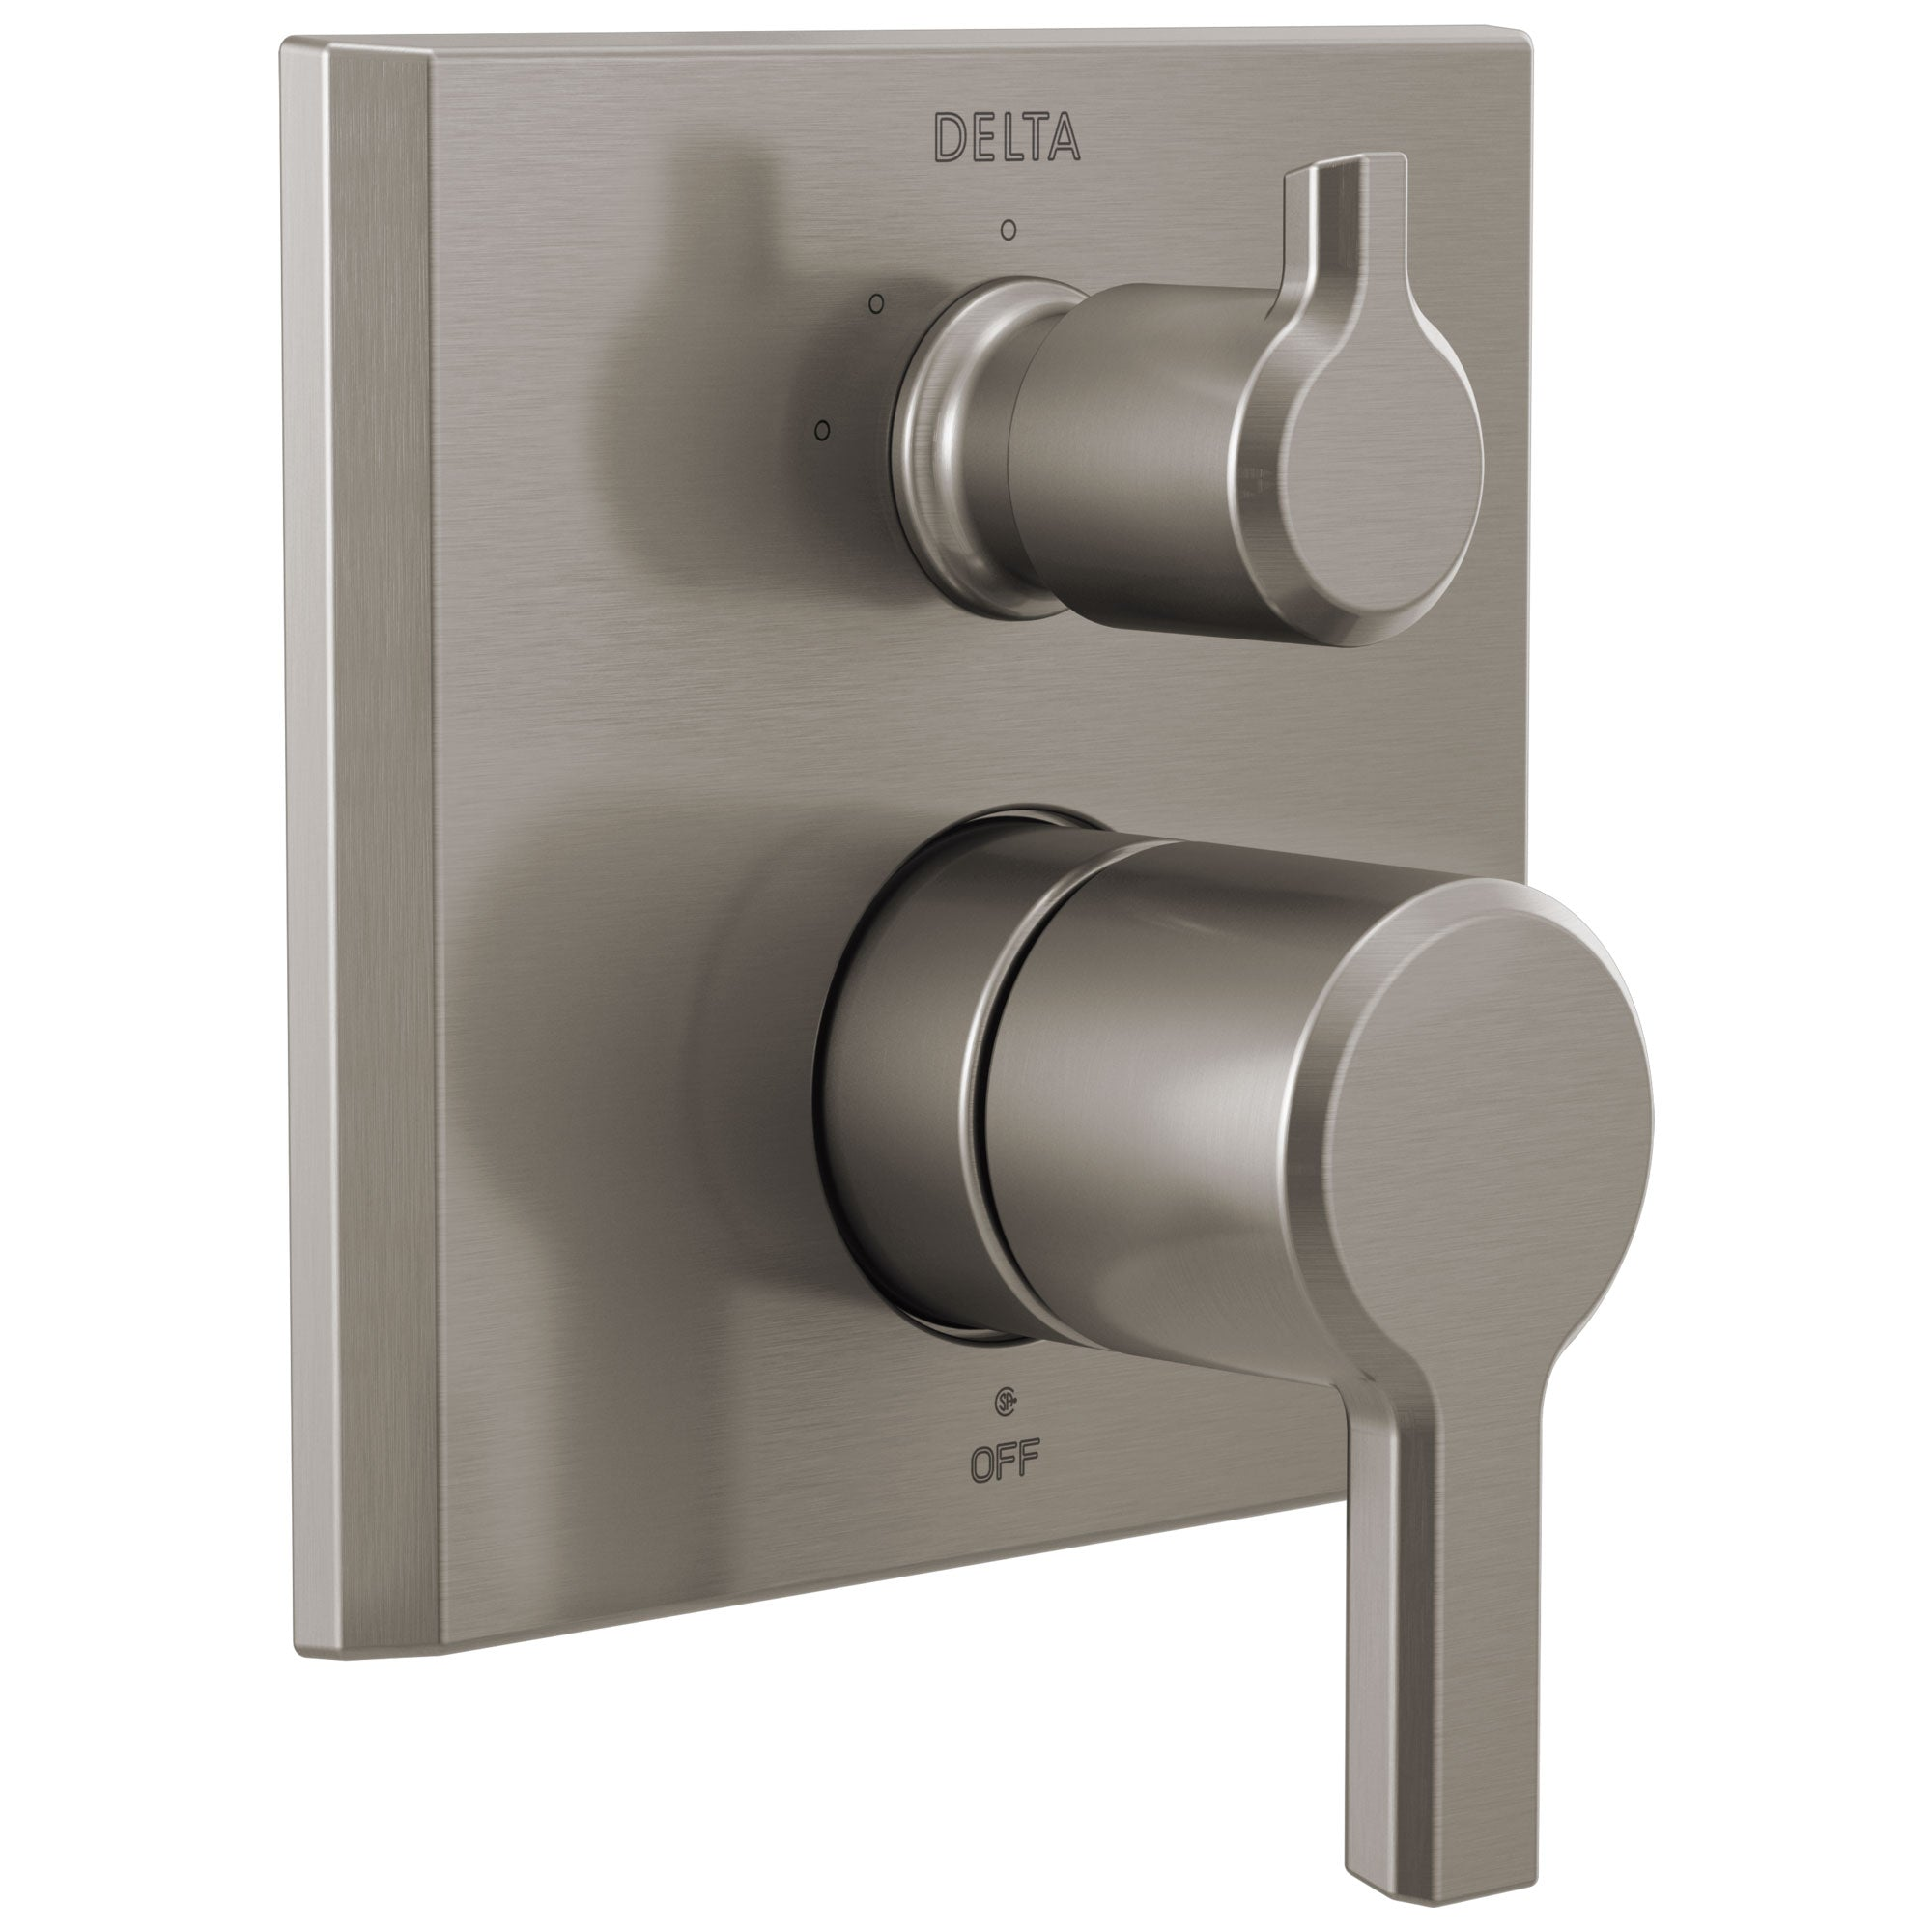 Delta Pivotal Stainless Steel Finish 2-Handle Monitor 14 Series Shower Control Trim Kit with 3-Setting Integrated Diverter (Requires Valve) DT24899SS